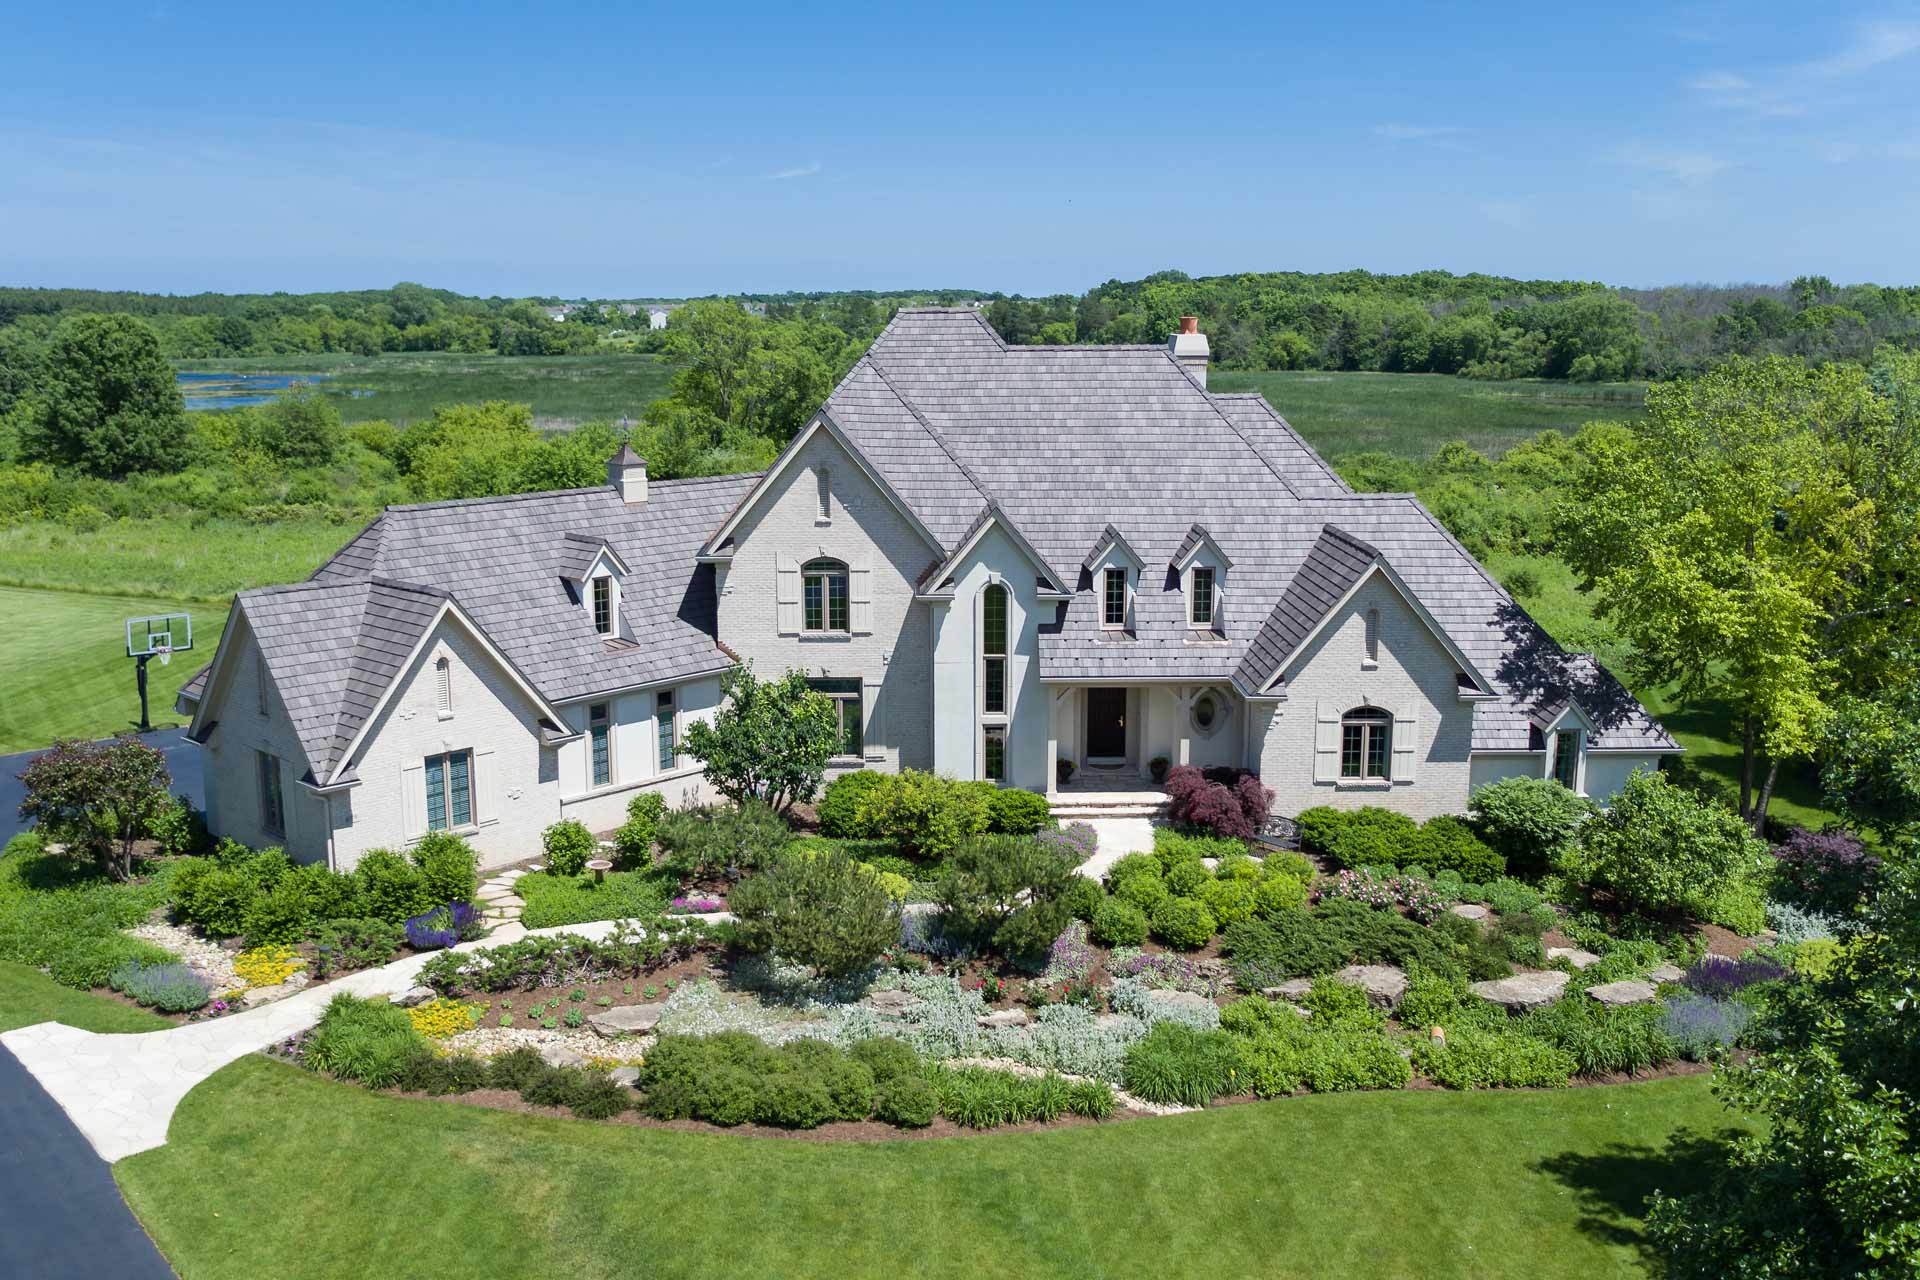 Aerial photo of large home with beautiful landscaping in the front.